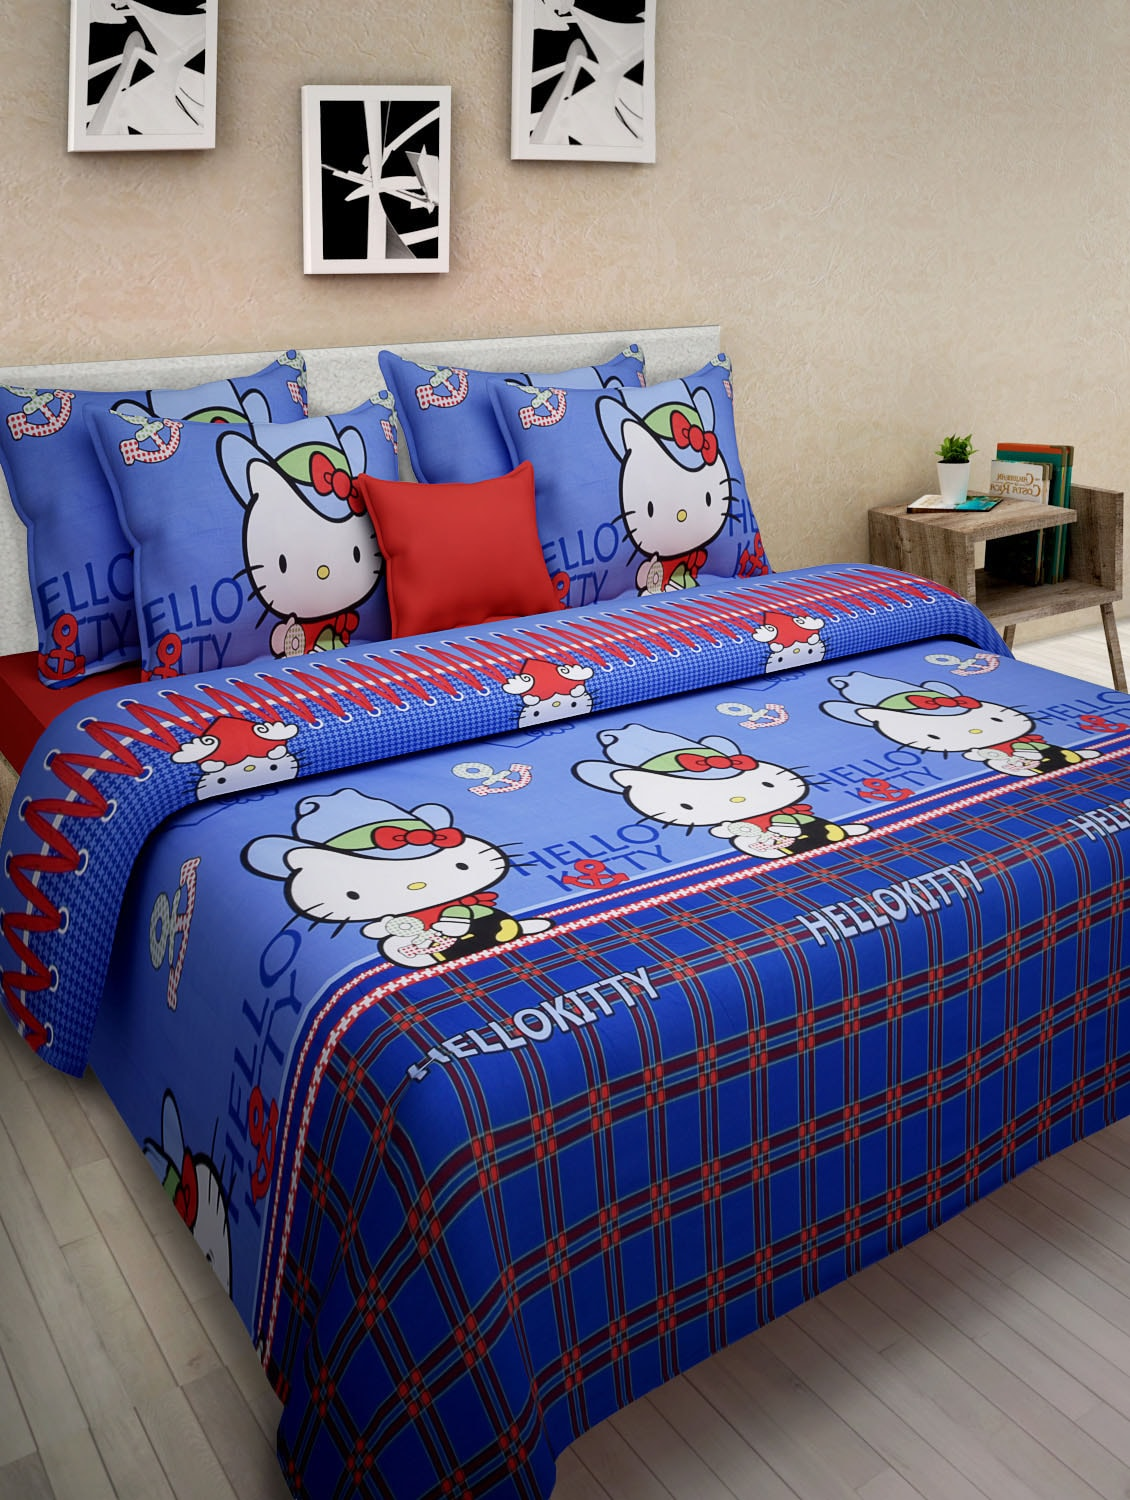 Hello kitty bedsheet blue -  Hello Kitty Blue Cotton Kids Double Bedsheet Set Tn2 Explore This Look Hover Over Image To Zoom